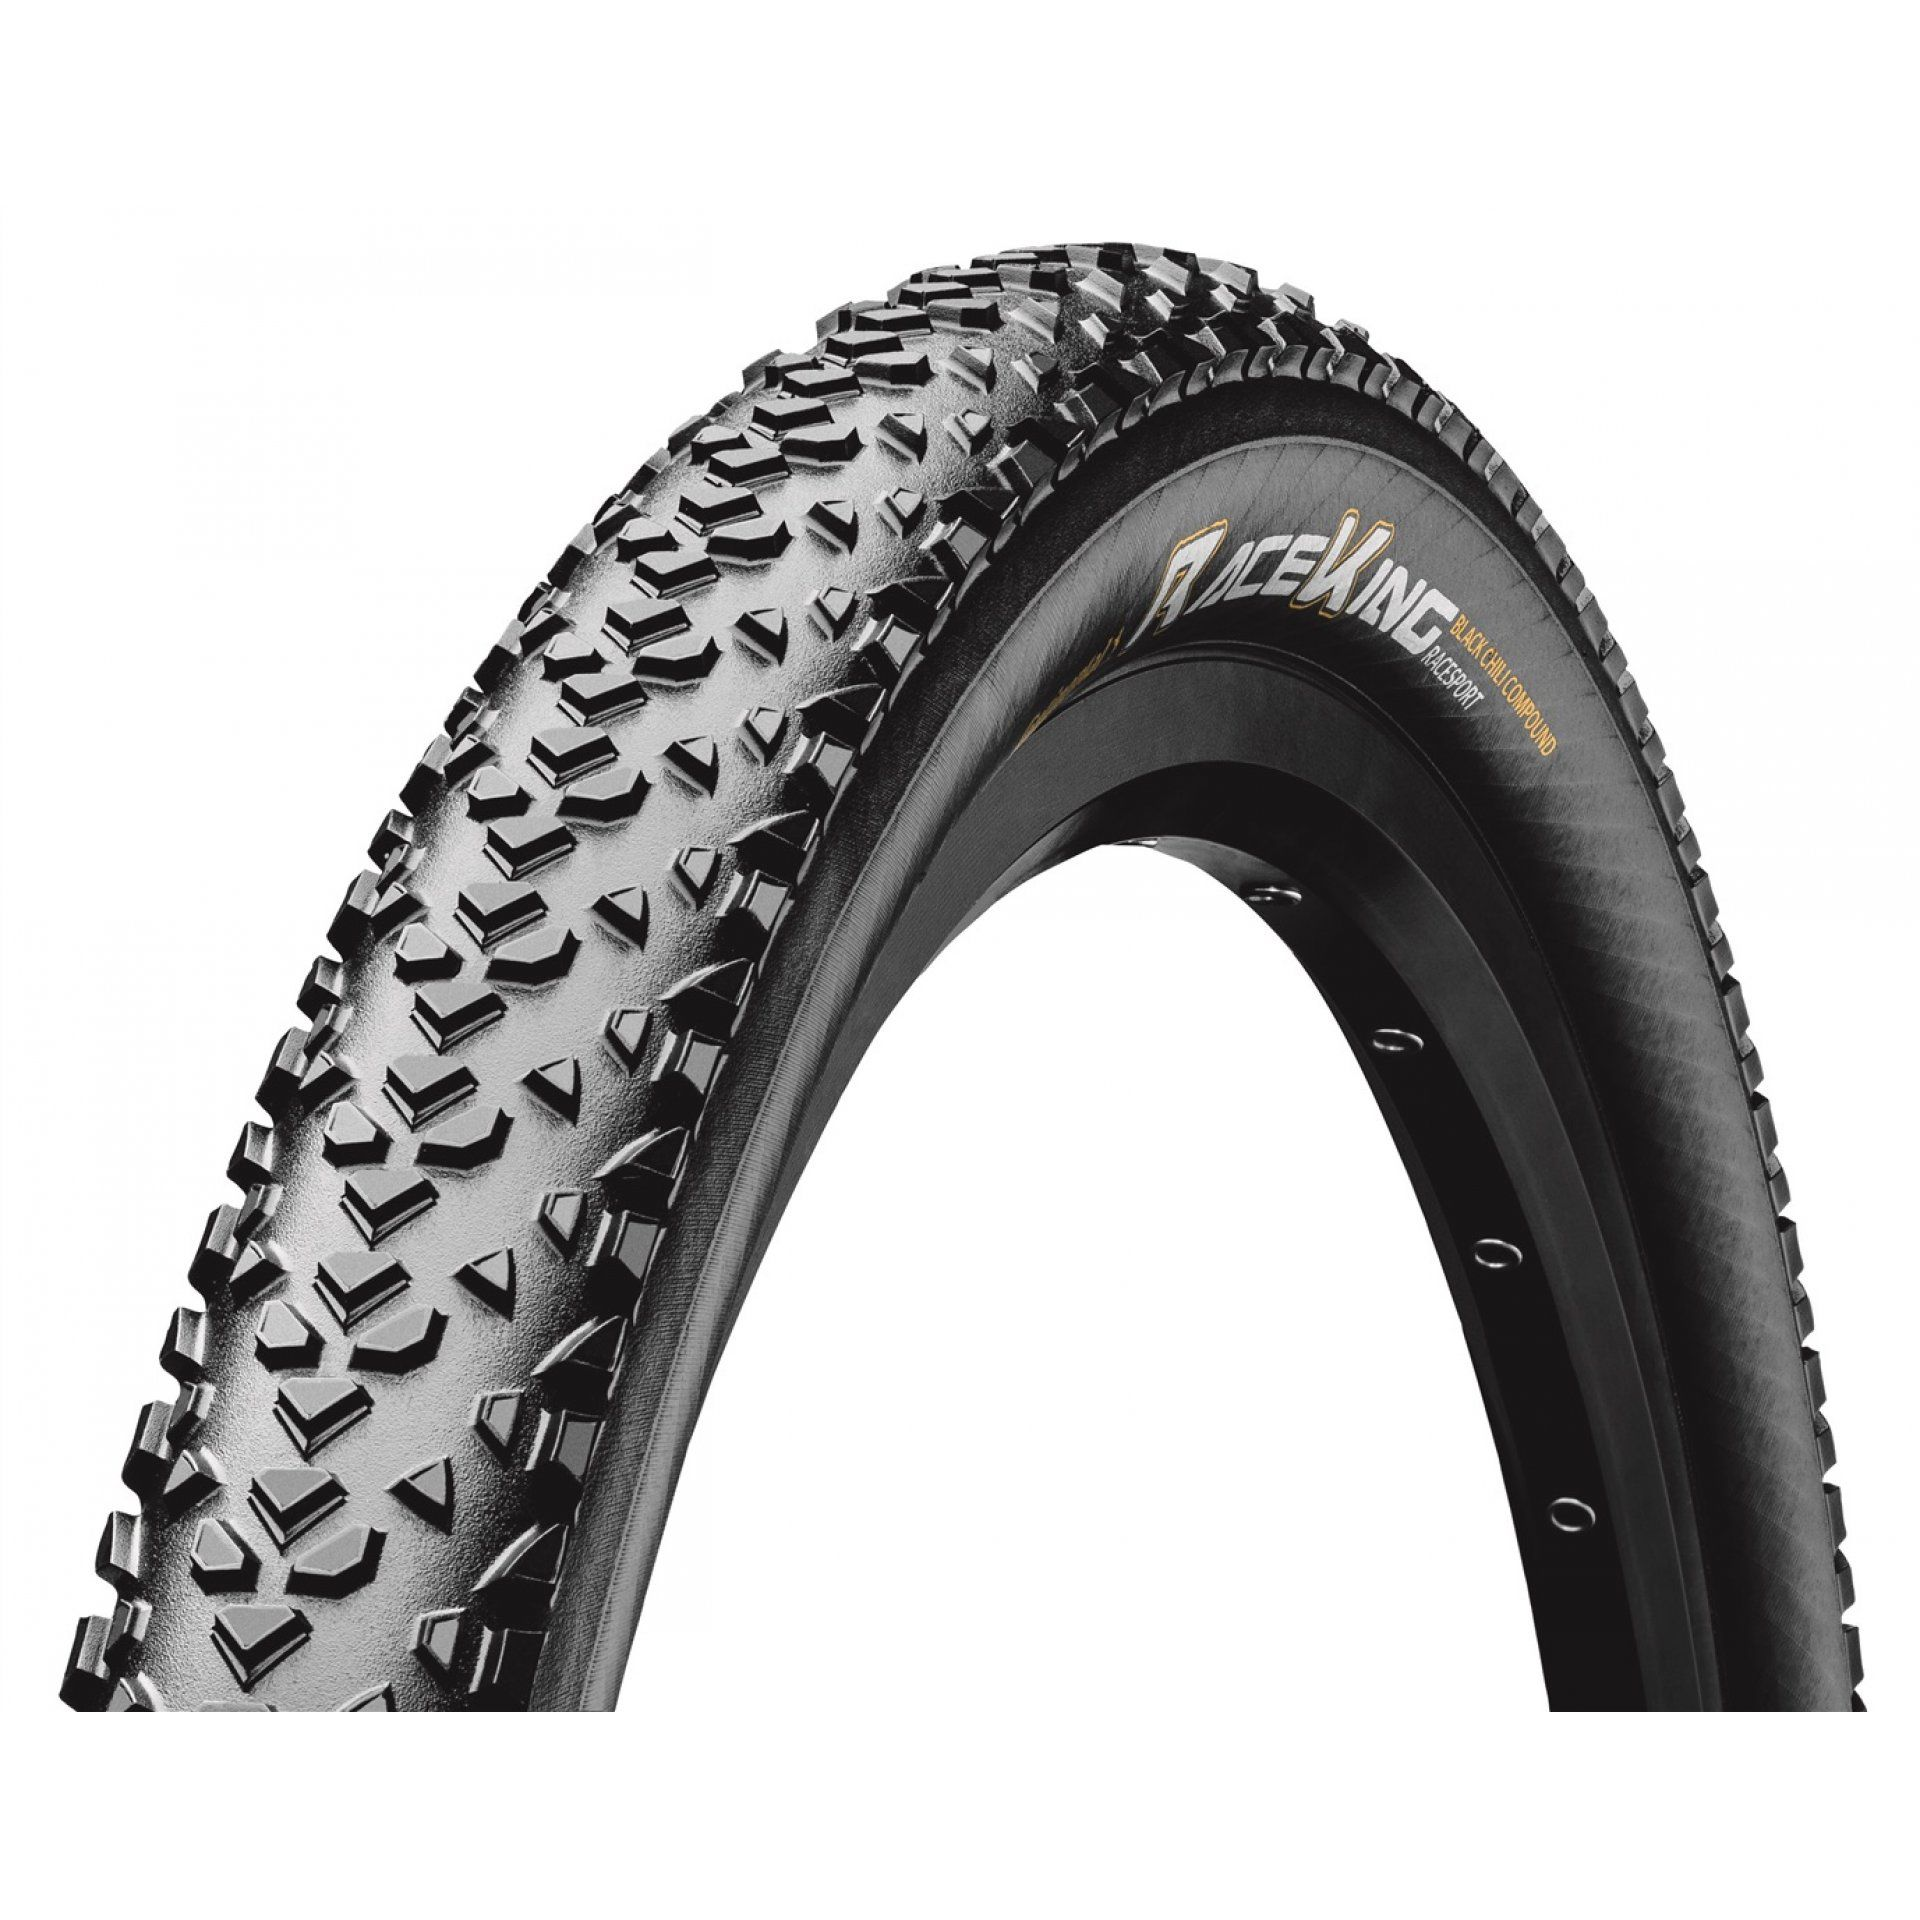 OPONA ROWEROWA CONTINENTAL DRUT RACE KING 27.5X2.2 BLACK